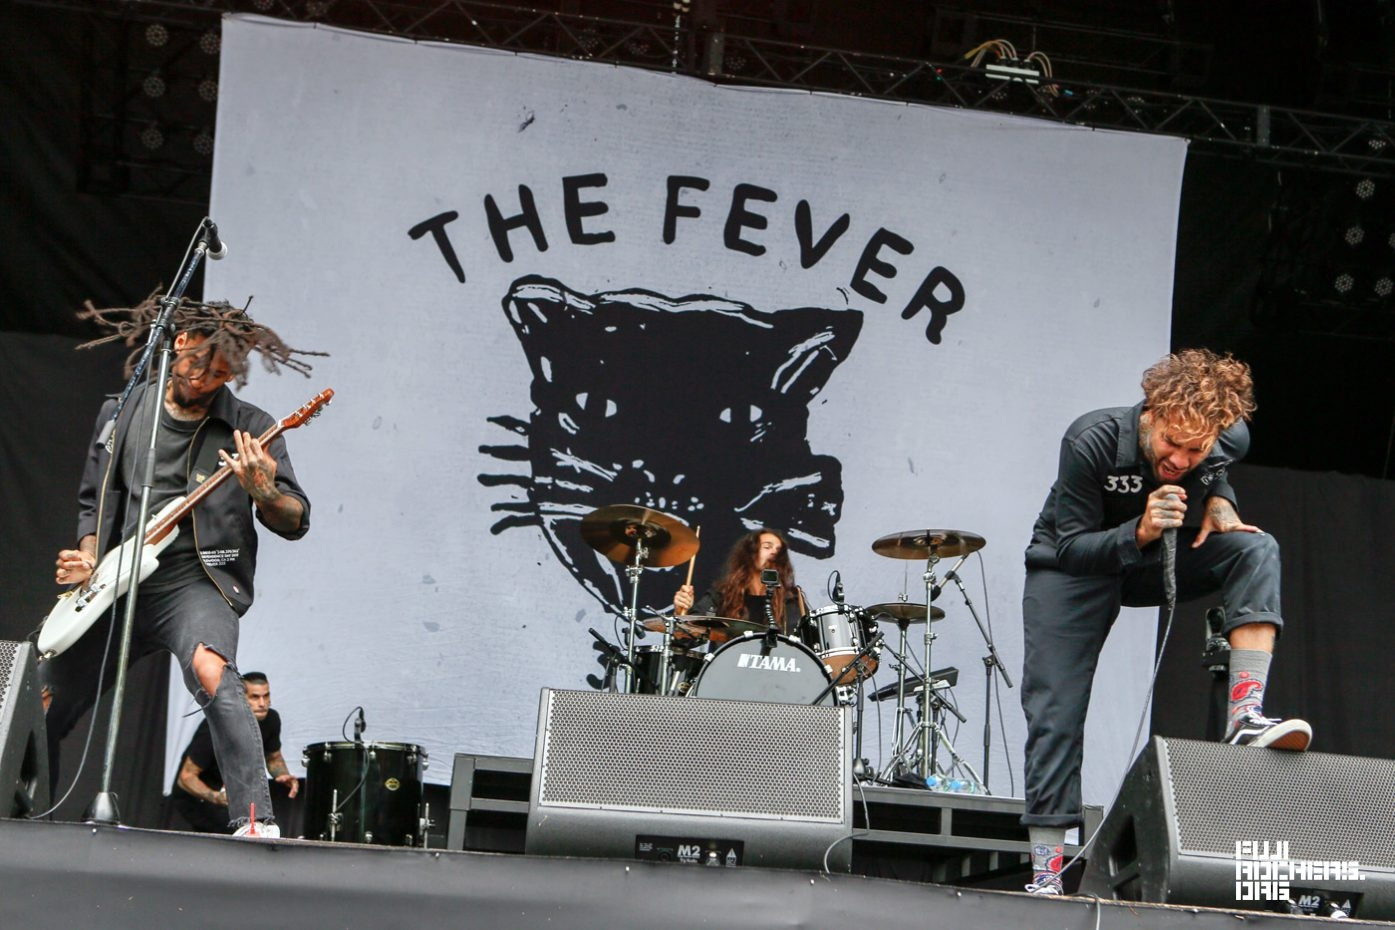 THE FEVER 333